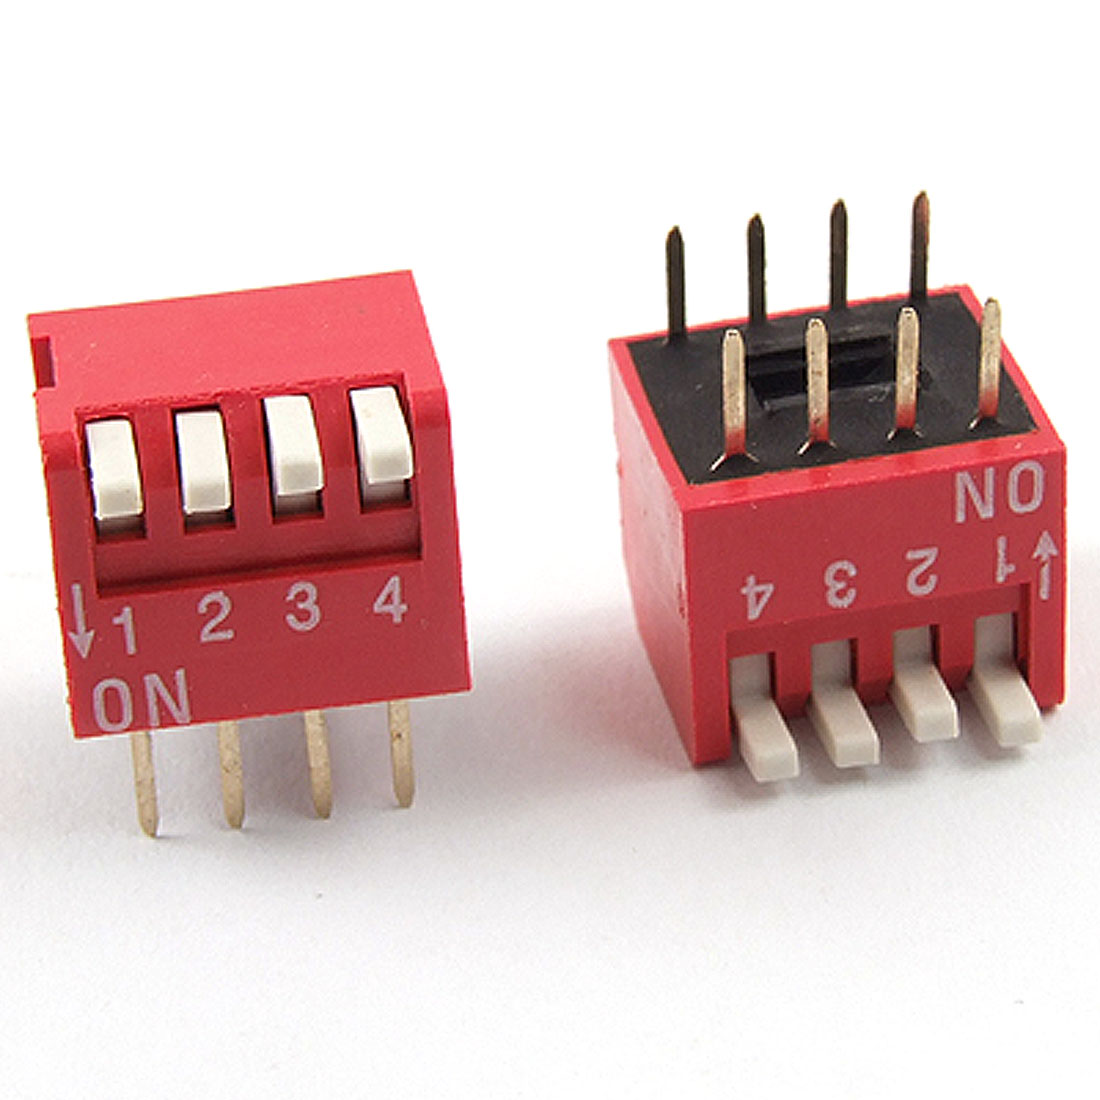 UXCELL 10Pcs 4 Positions 8P 8 Pin 2.54Mm Pitch Side Piano Type Dip Switch Red Switching Rating 25mA DC 24V For Data Processing